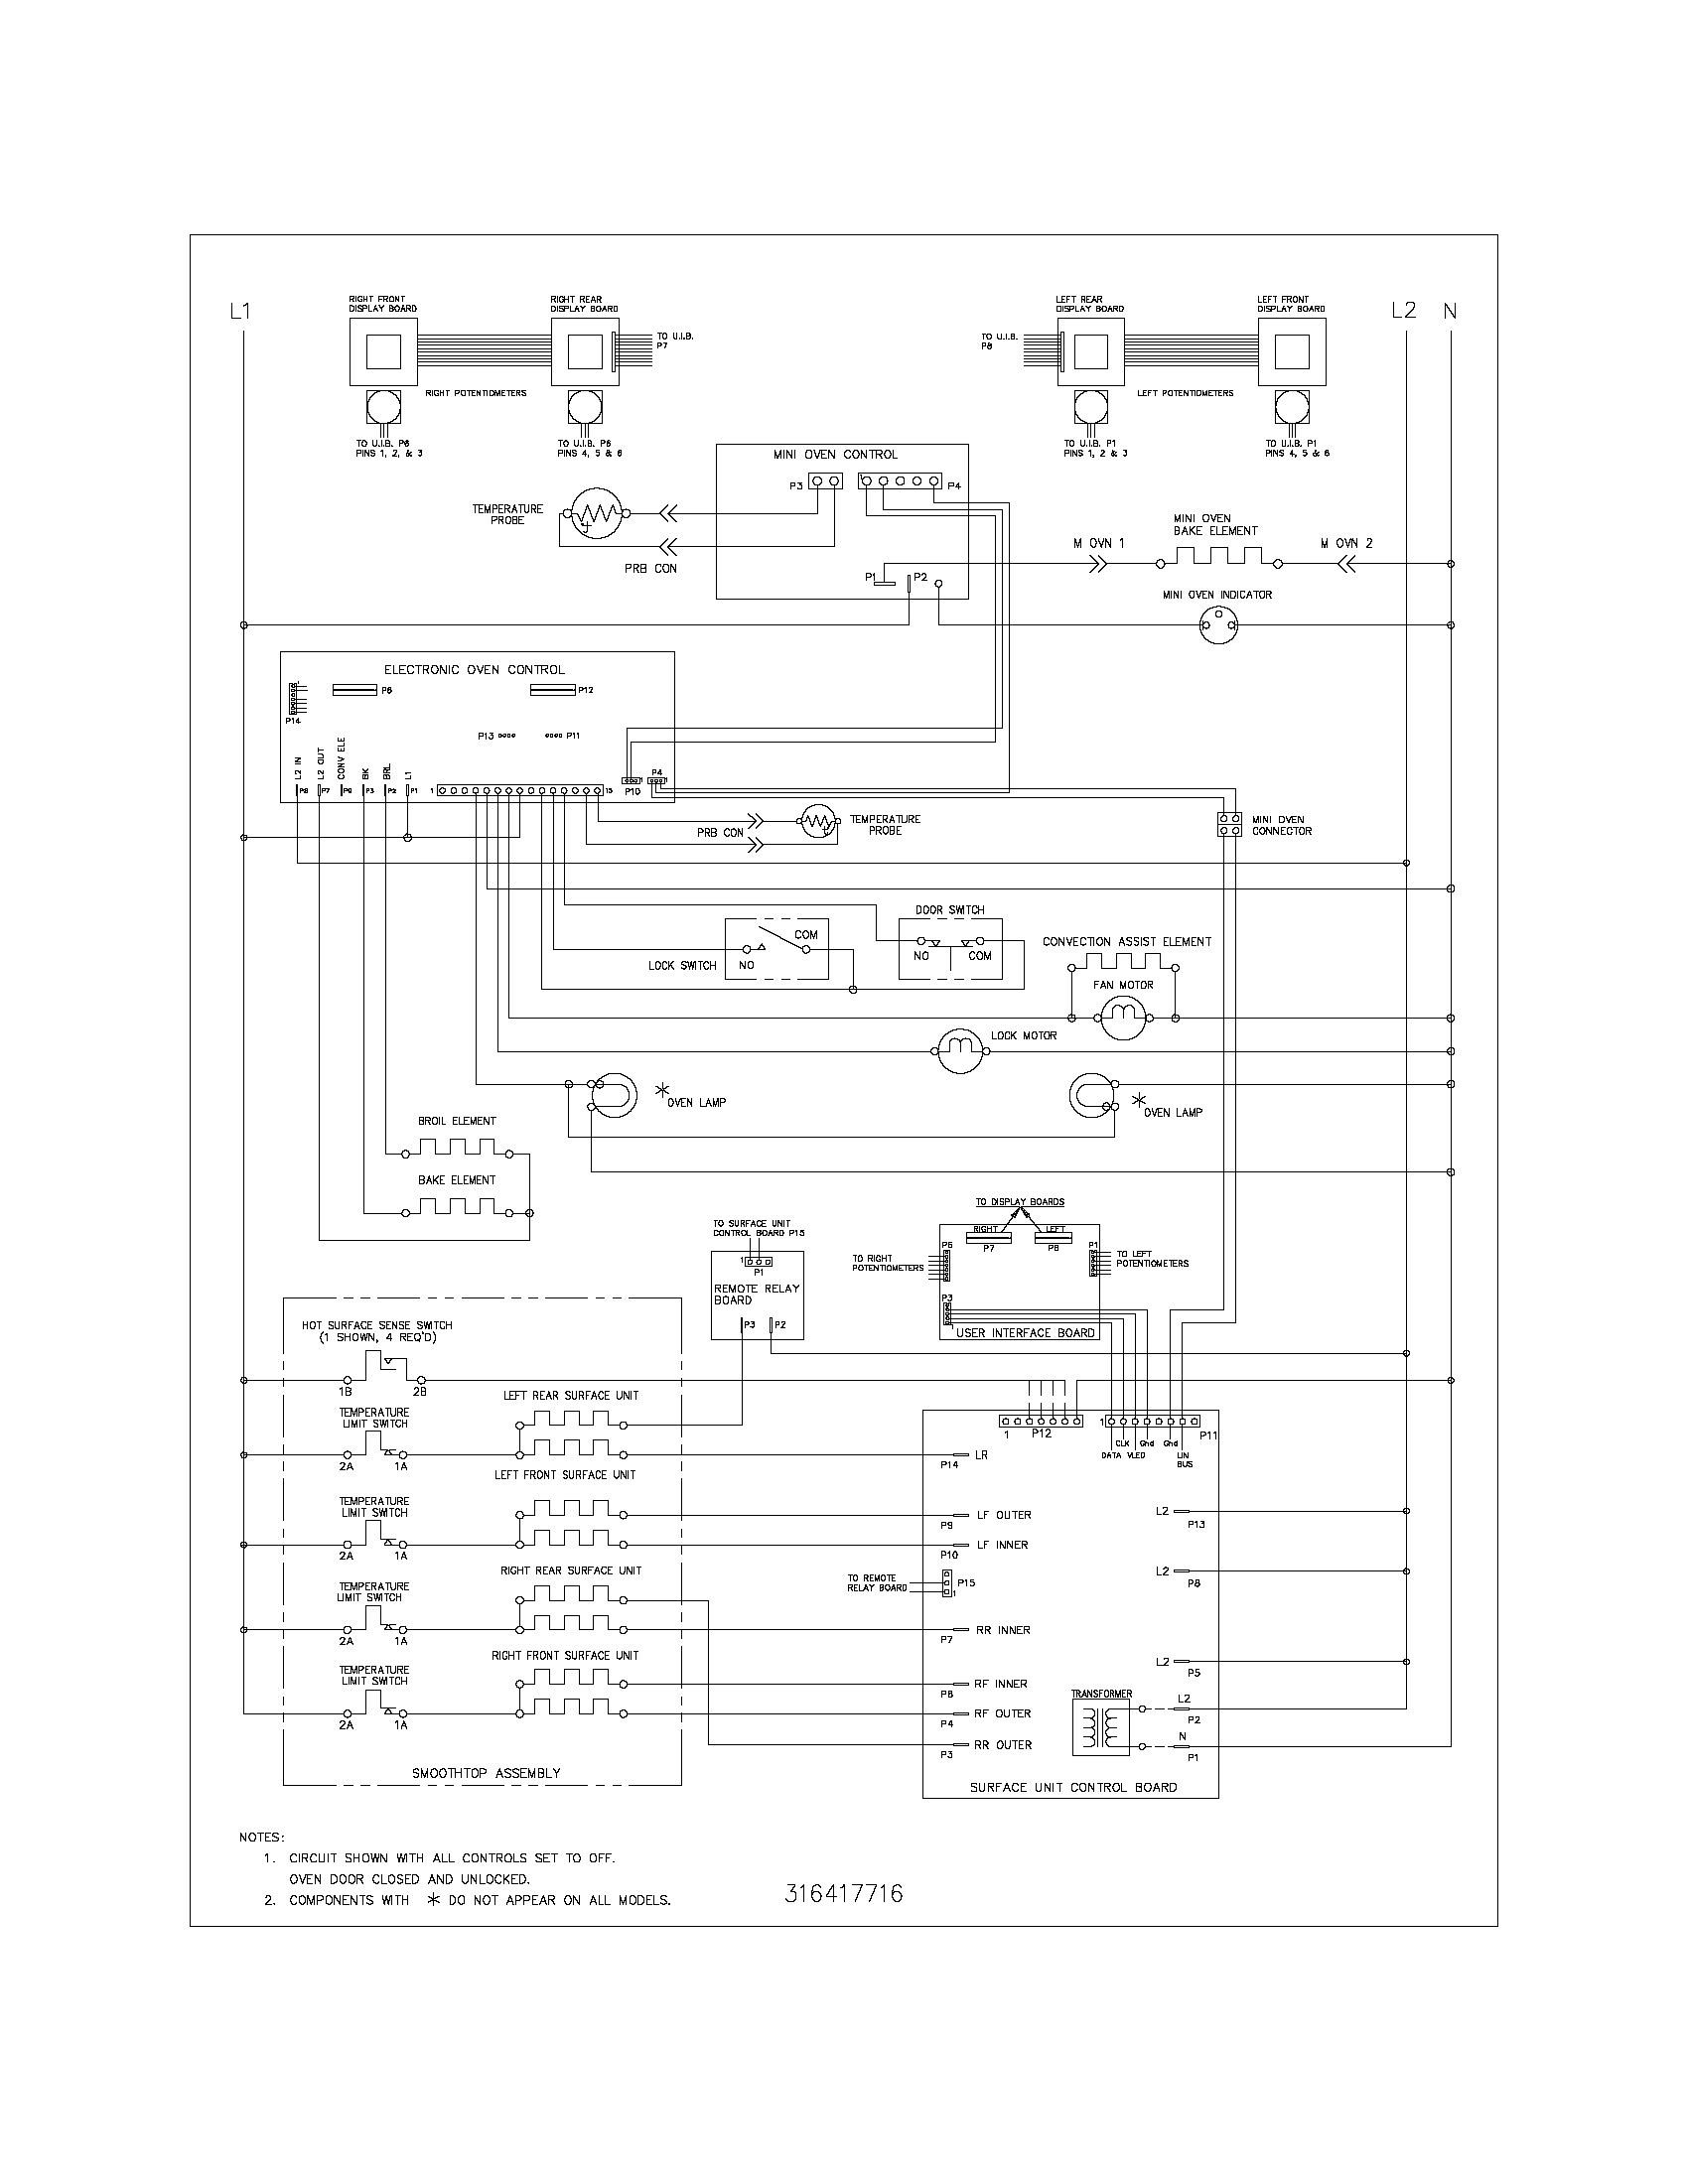 wiring schematic parts frigidaire stove wiring diagram frigidaire washer wiring diagram  at readyjetset.co